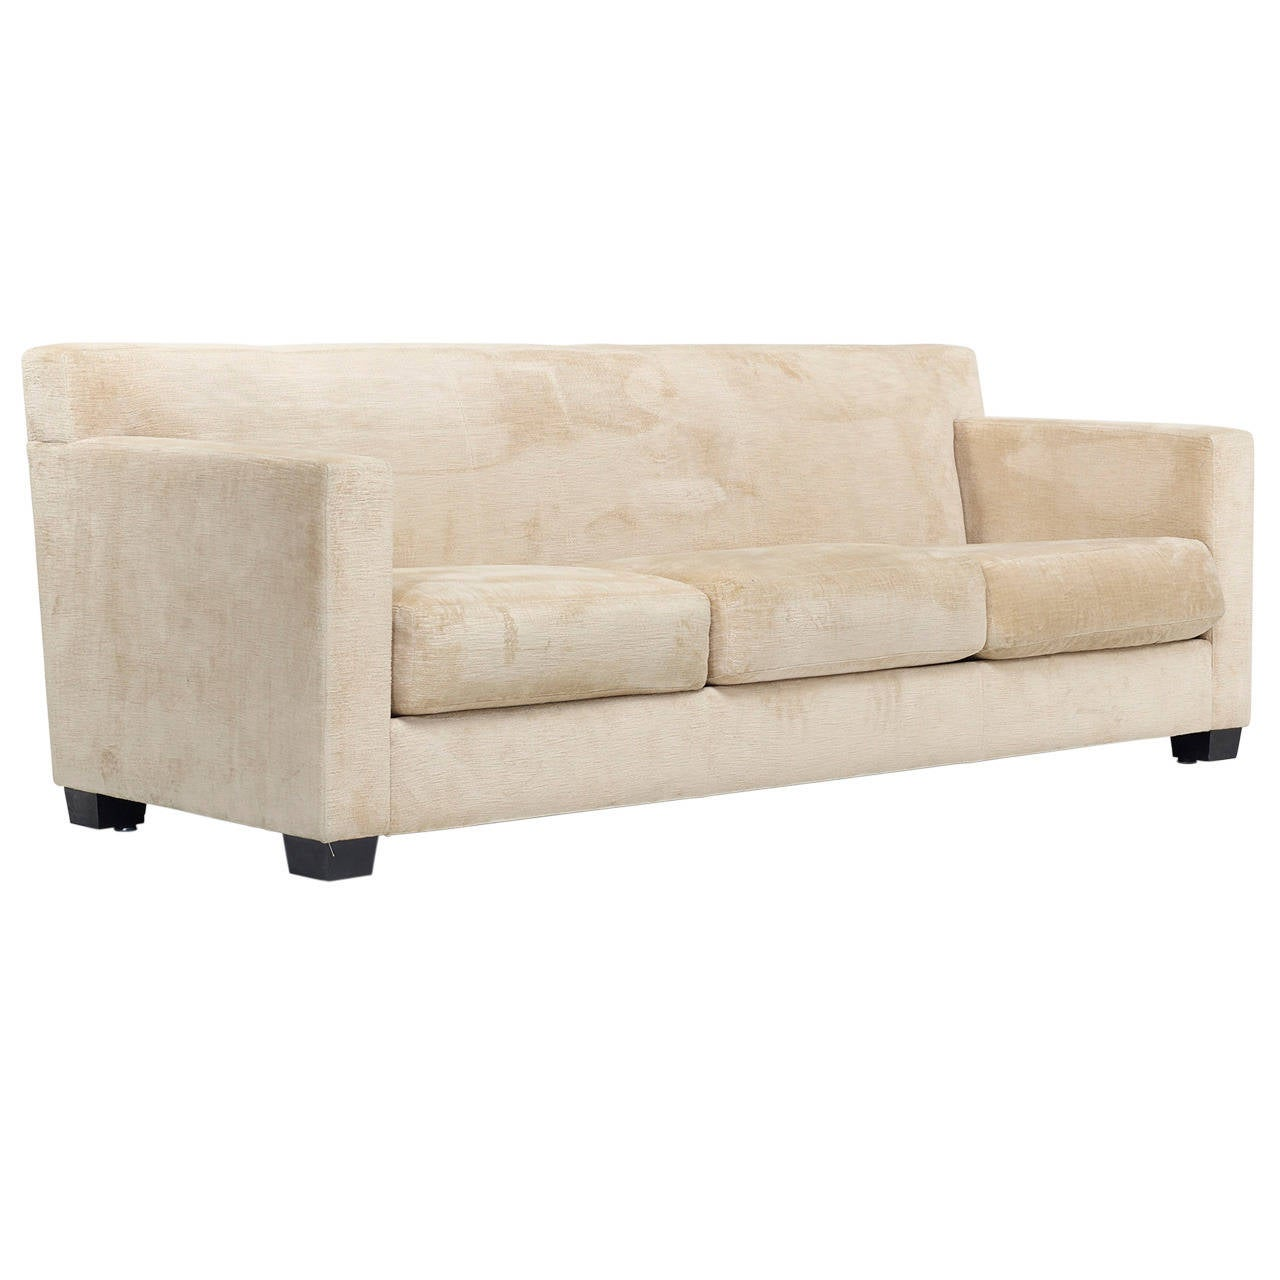 jean michel frank style sofa plaid and loveseat set velvet